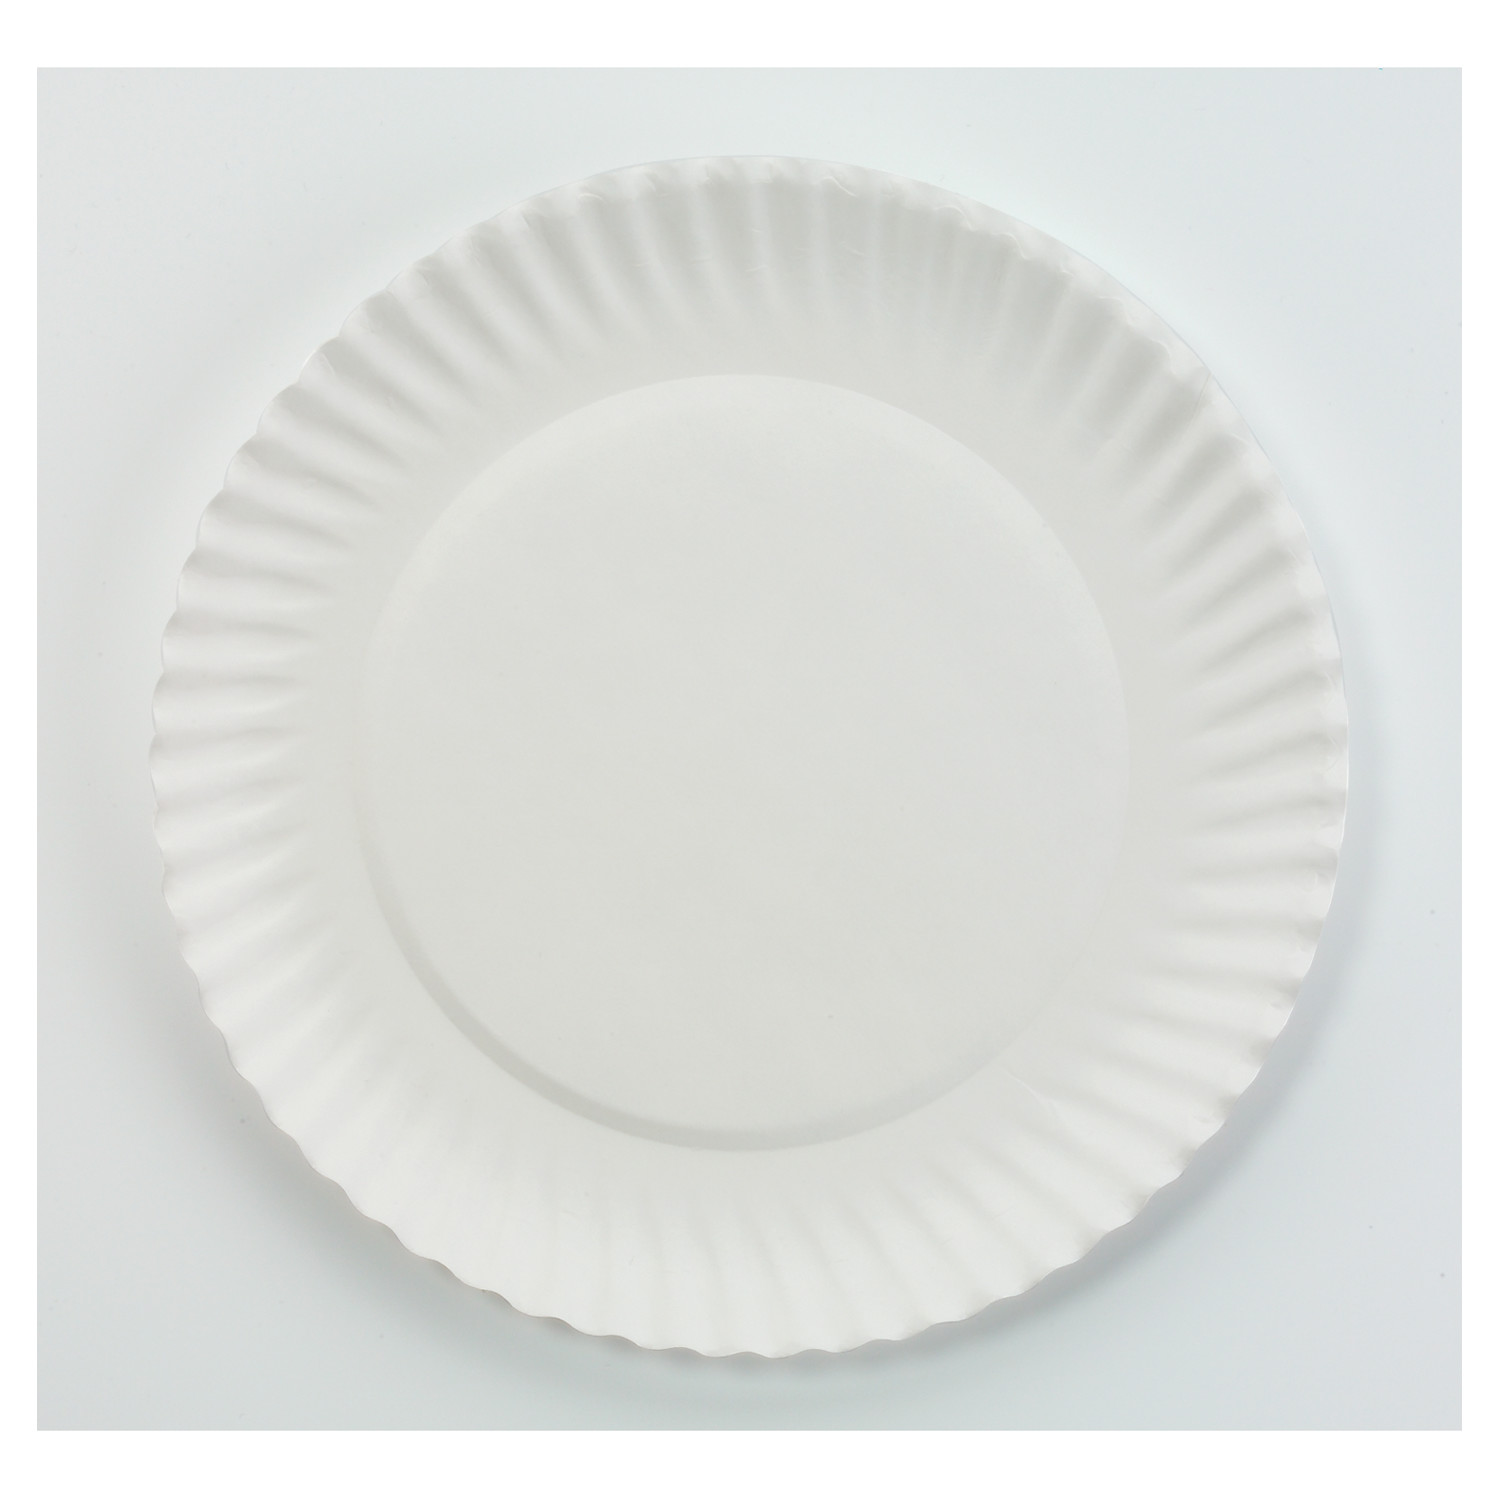 AJM Packaging Corporation 6 Inch Paper Plates 1000 ct  sc 1 st  Walmart & AJM Packaging Corporation 6 Inch Paper Plates 1000 ct - Walmart.com